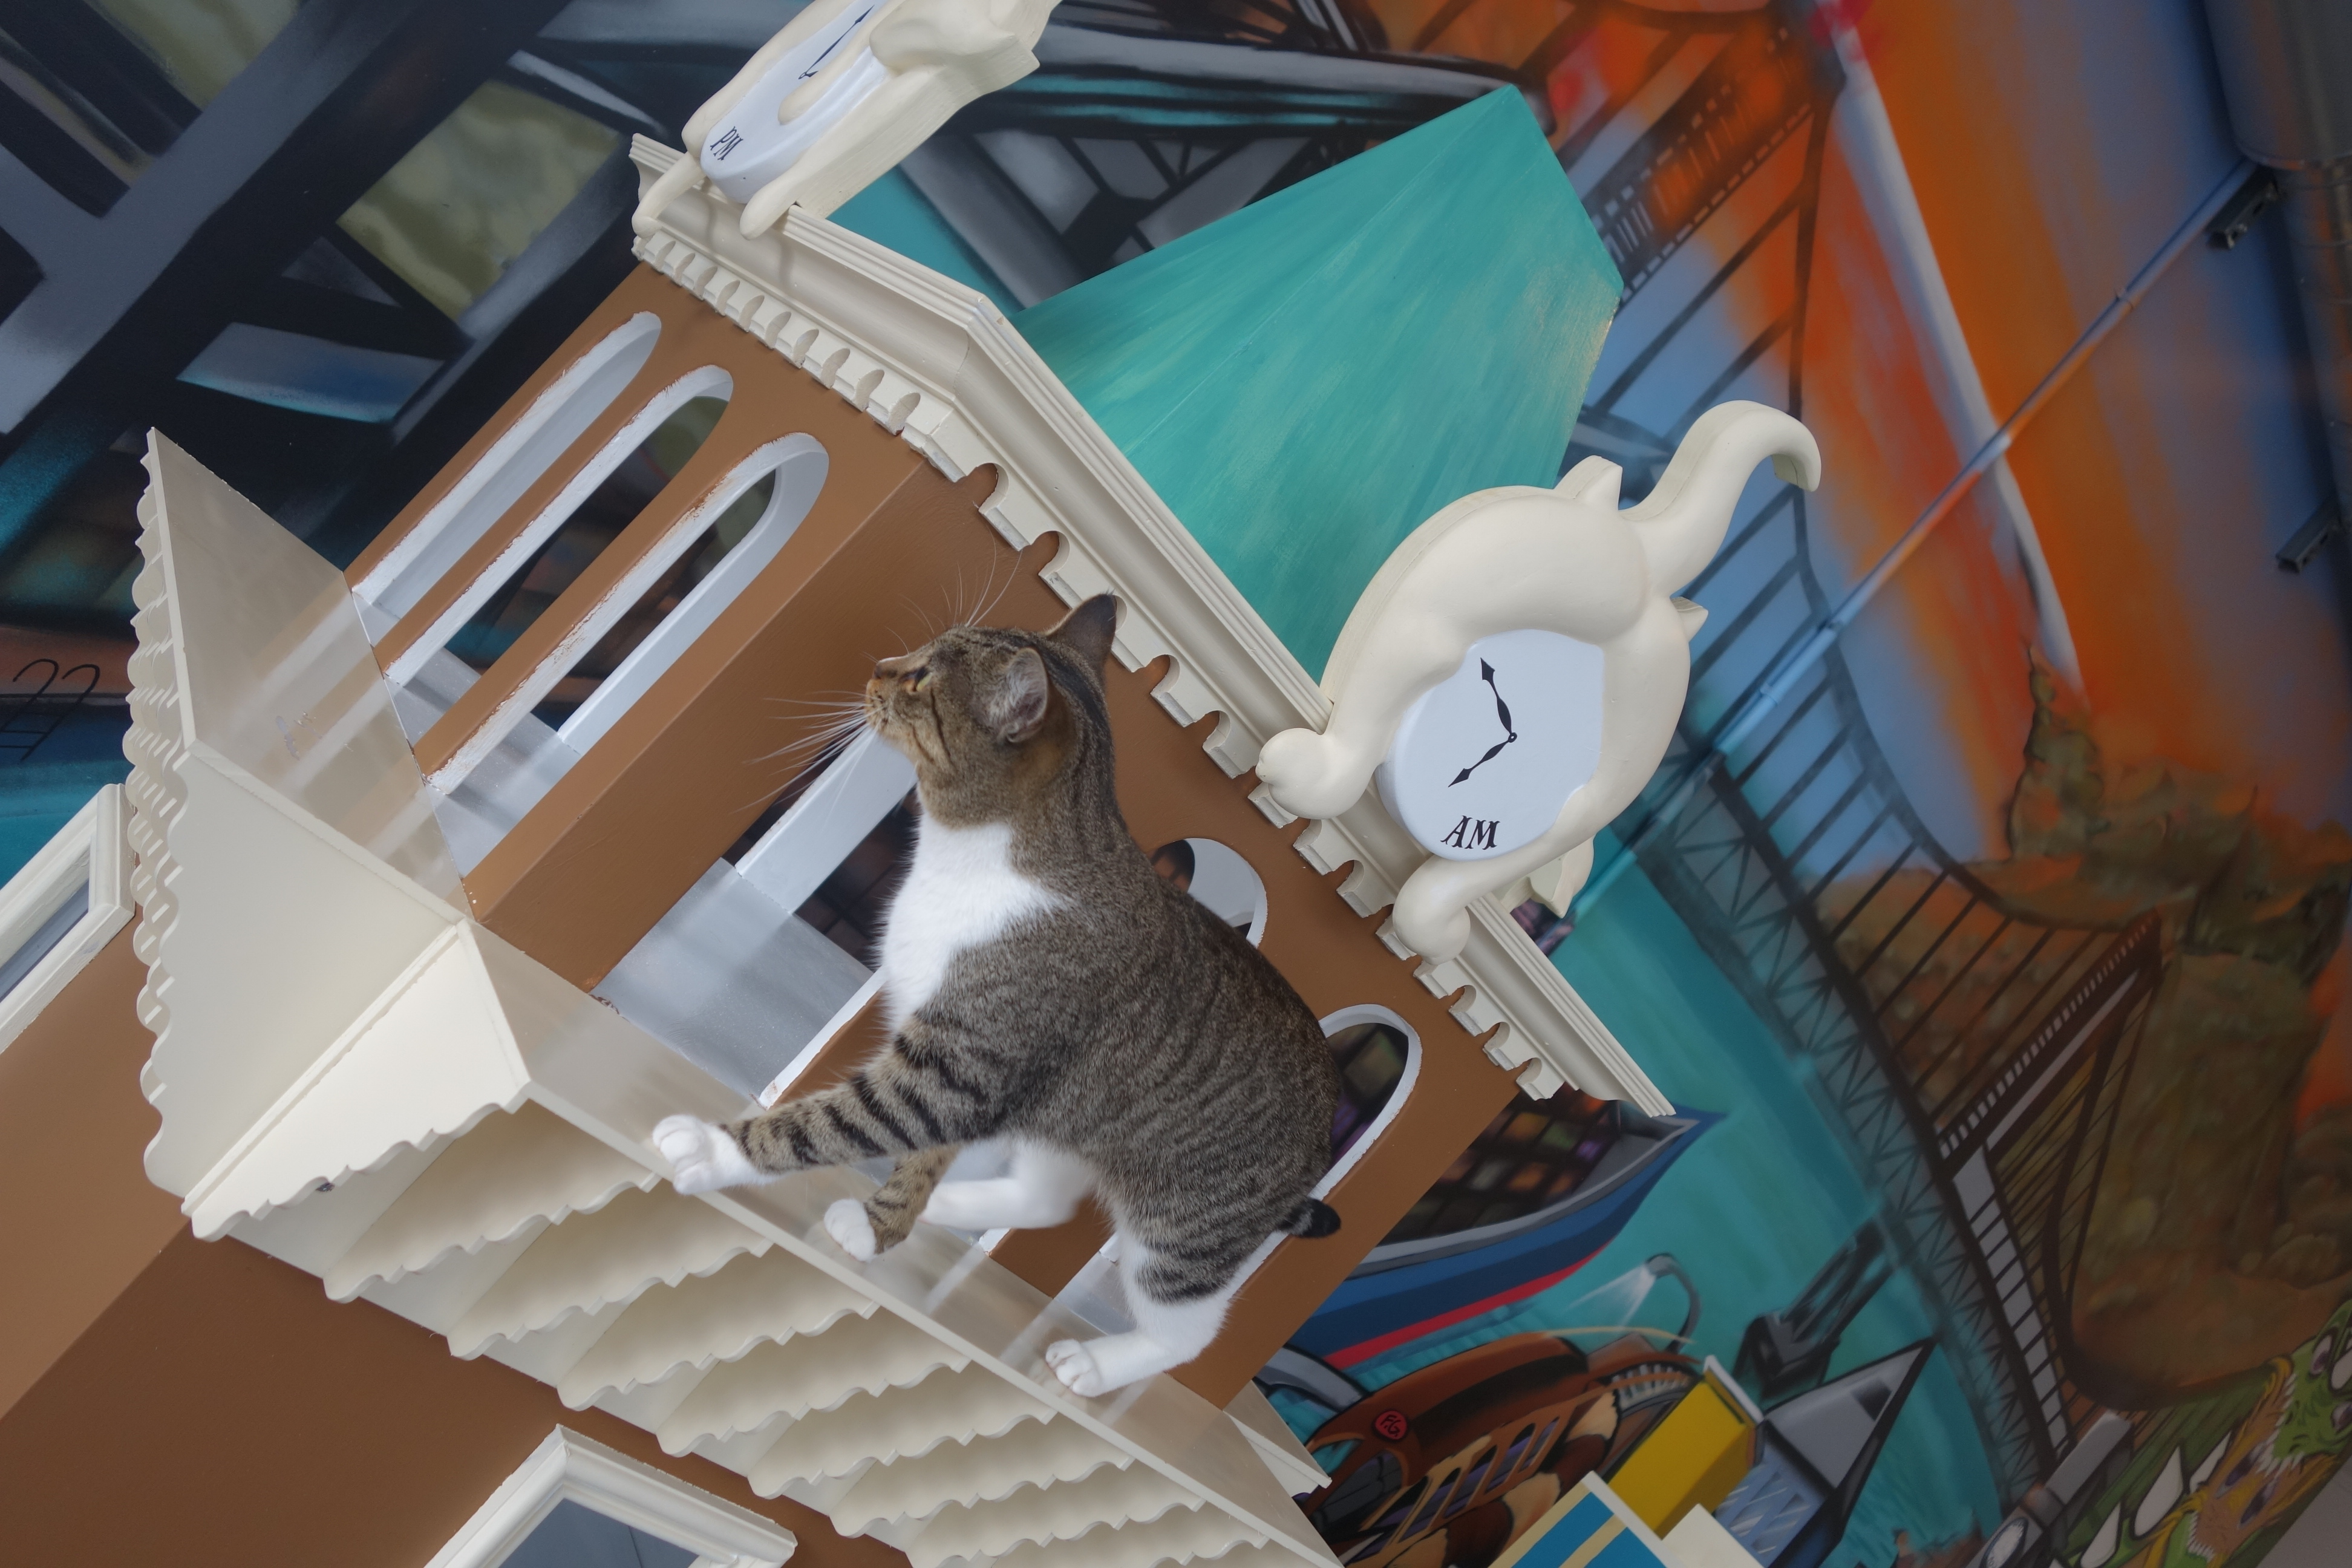 A cat walks atop a reproduction of Oakland's Tribune Tower at the Cat Town Cafe in Oakland on Oct. 25, 2014.